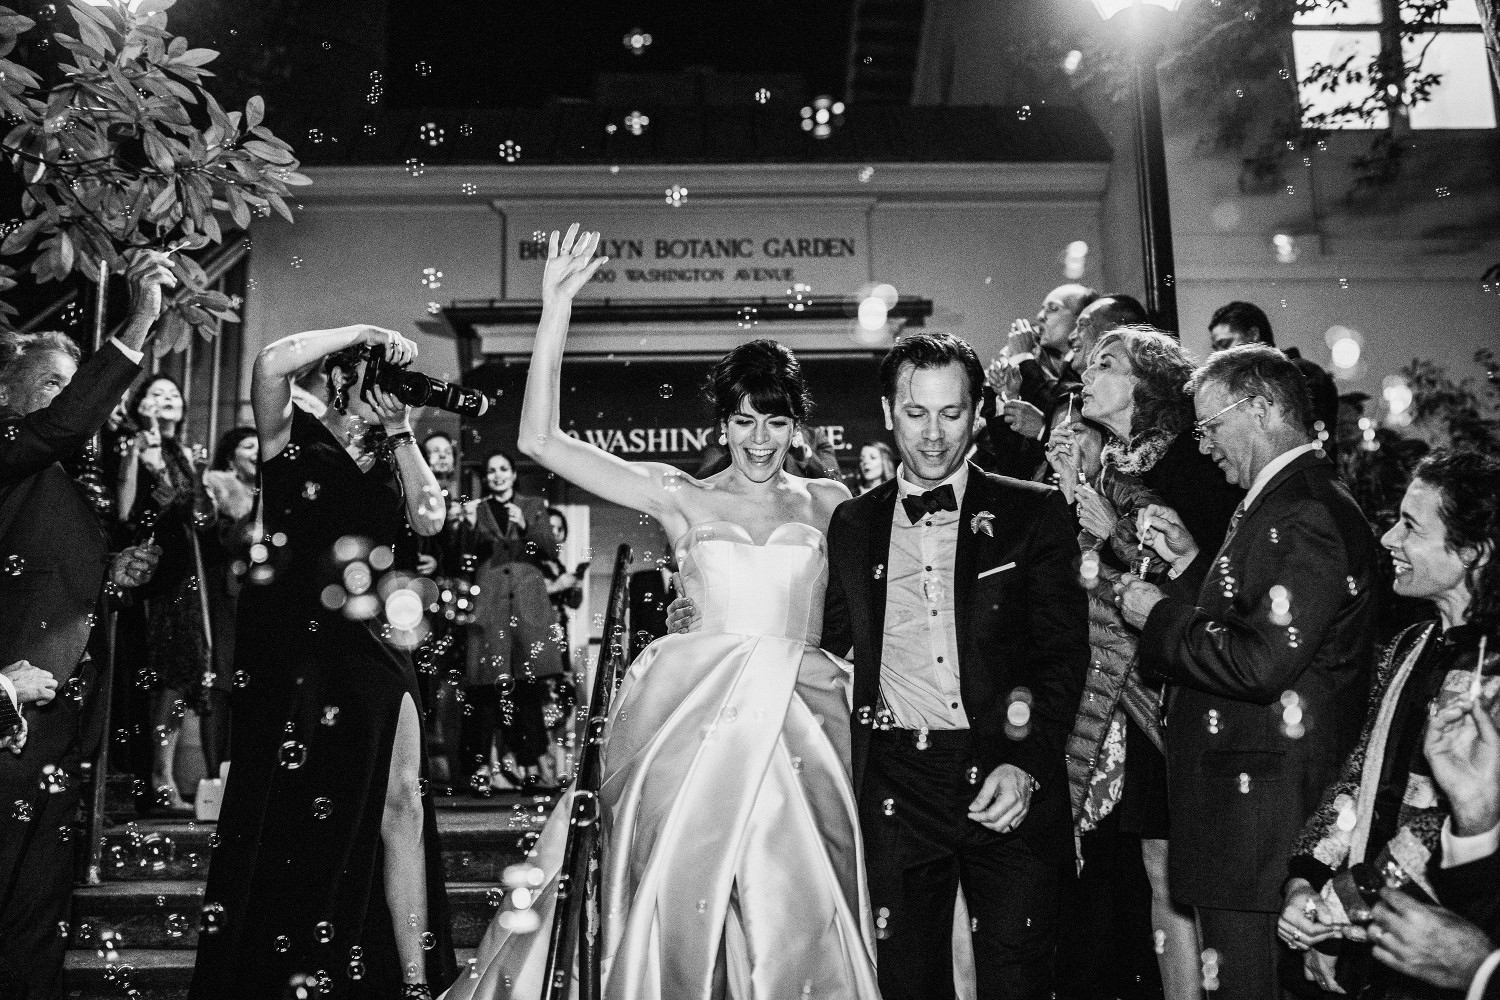 Wedding couple - bride and groom make an exit after their wedding reception at the Brooklyn Botanic